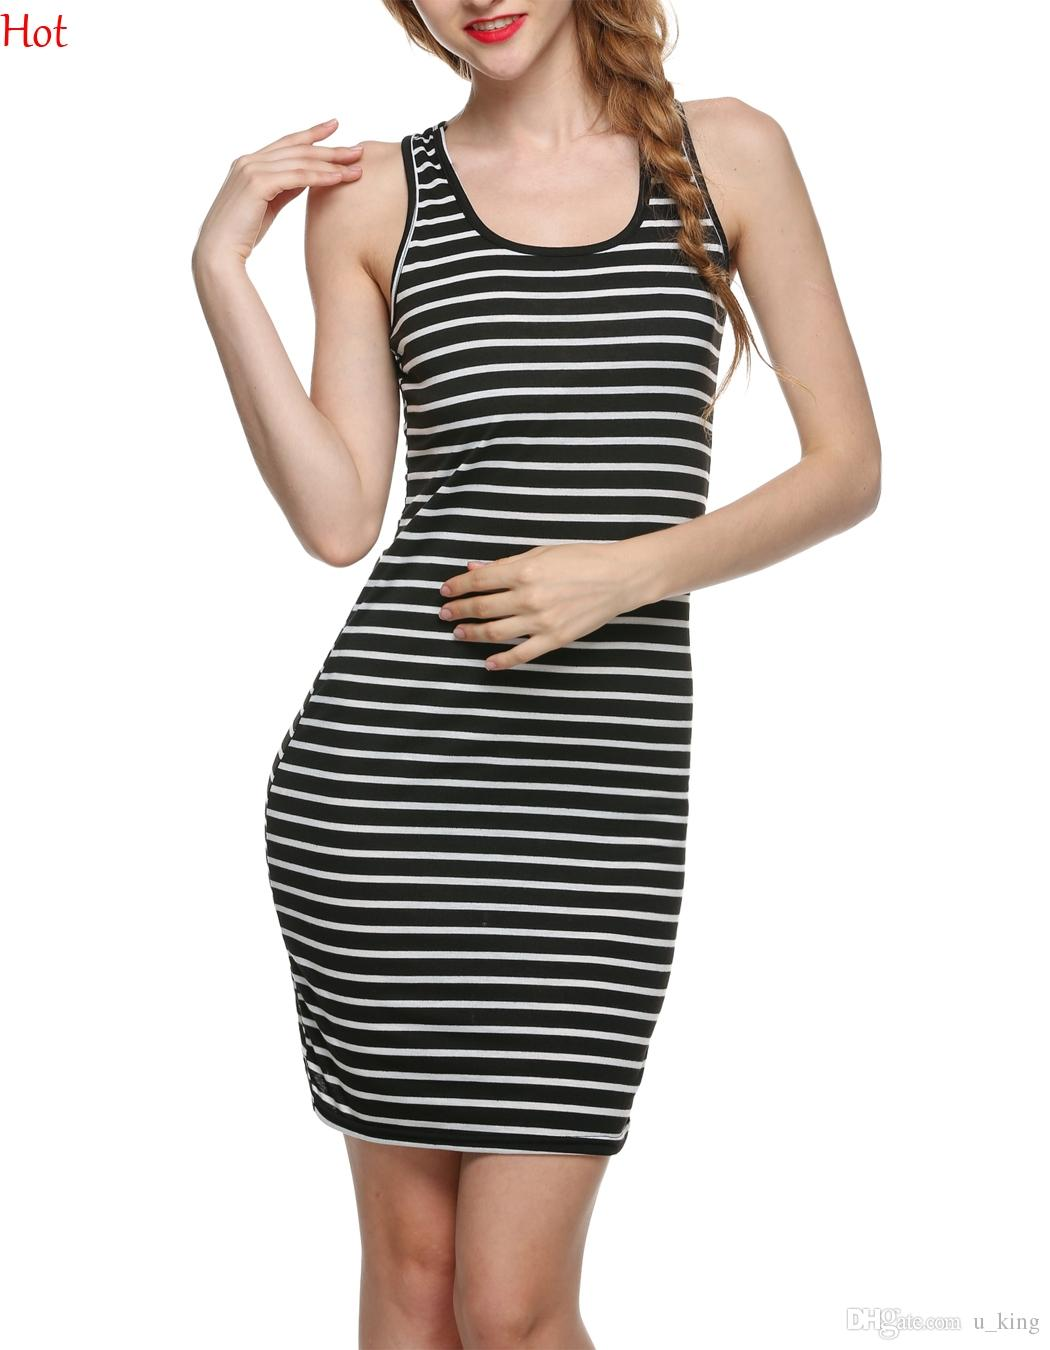 4d660c12979 2016 Women Clothes Striped Dresses Summer Fashion Sleeveless Bodycon Casual  Slim Fitted Tank Dress Black Red Blue Cotton Mini Dress SV025054 Dresses  For ...